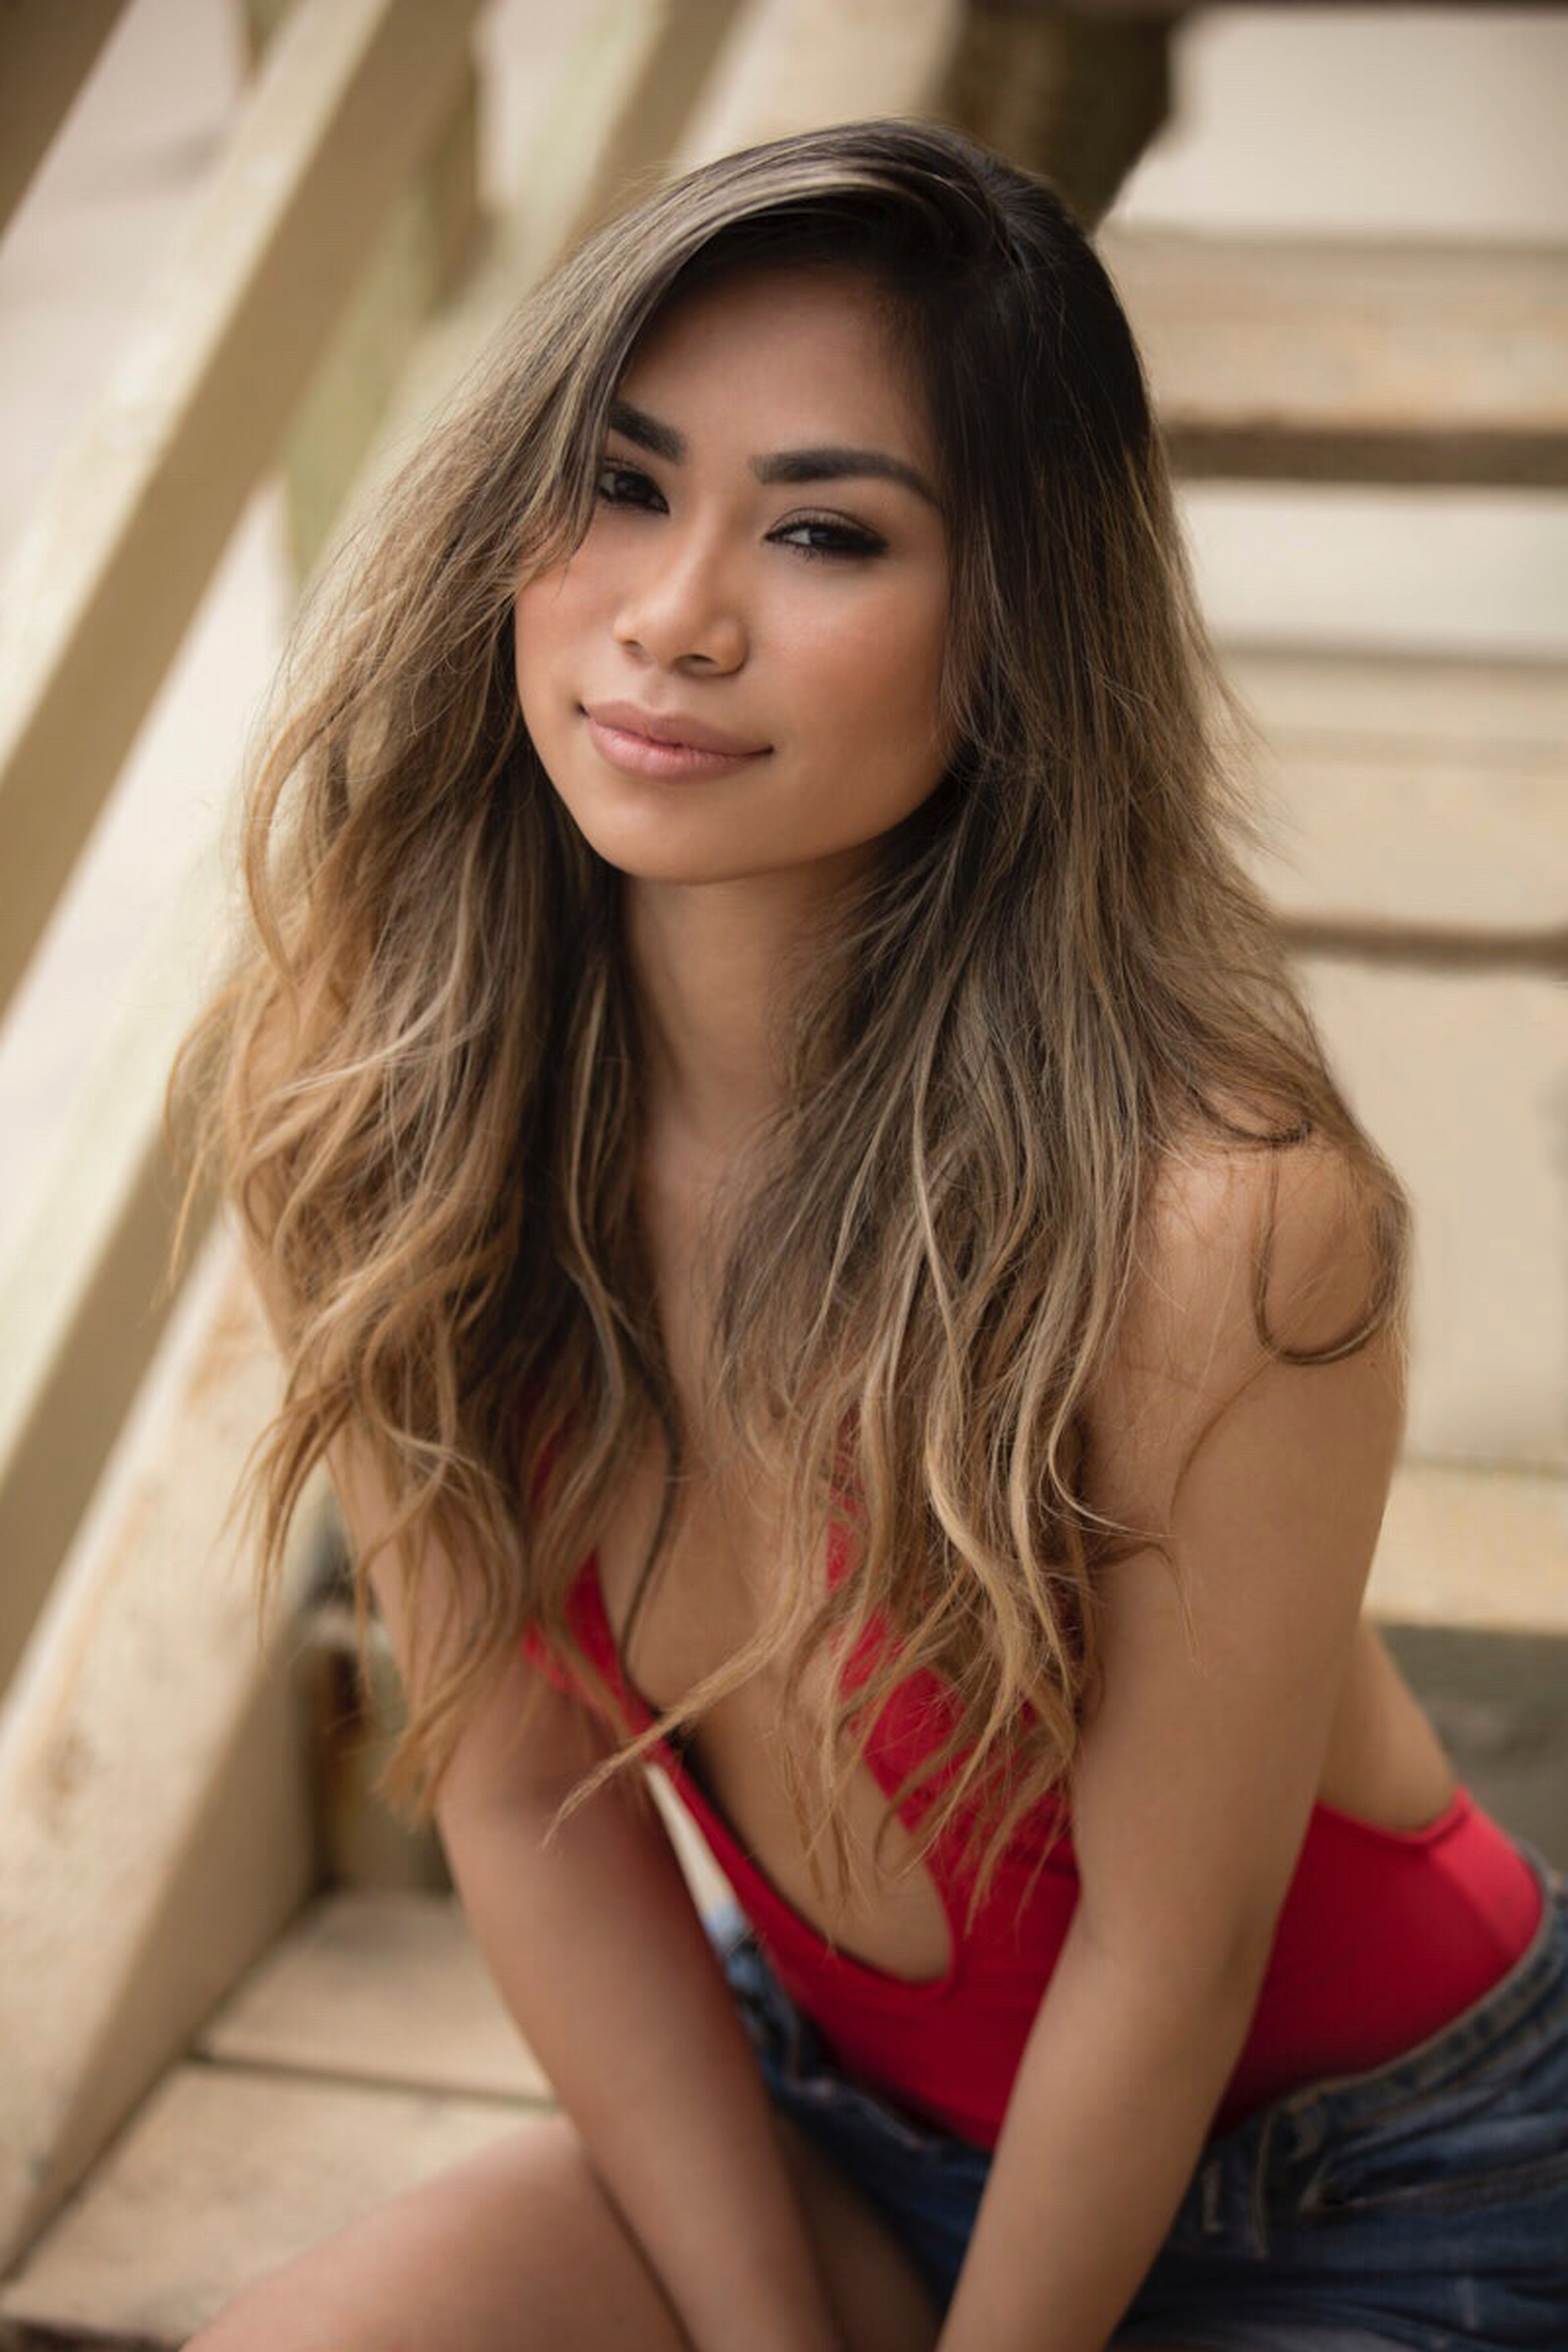 American Idol Contestant Jessica Sanchez for MostMag Editorial  Modeling Celebrity Music Artist